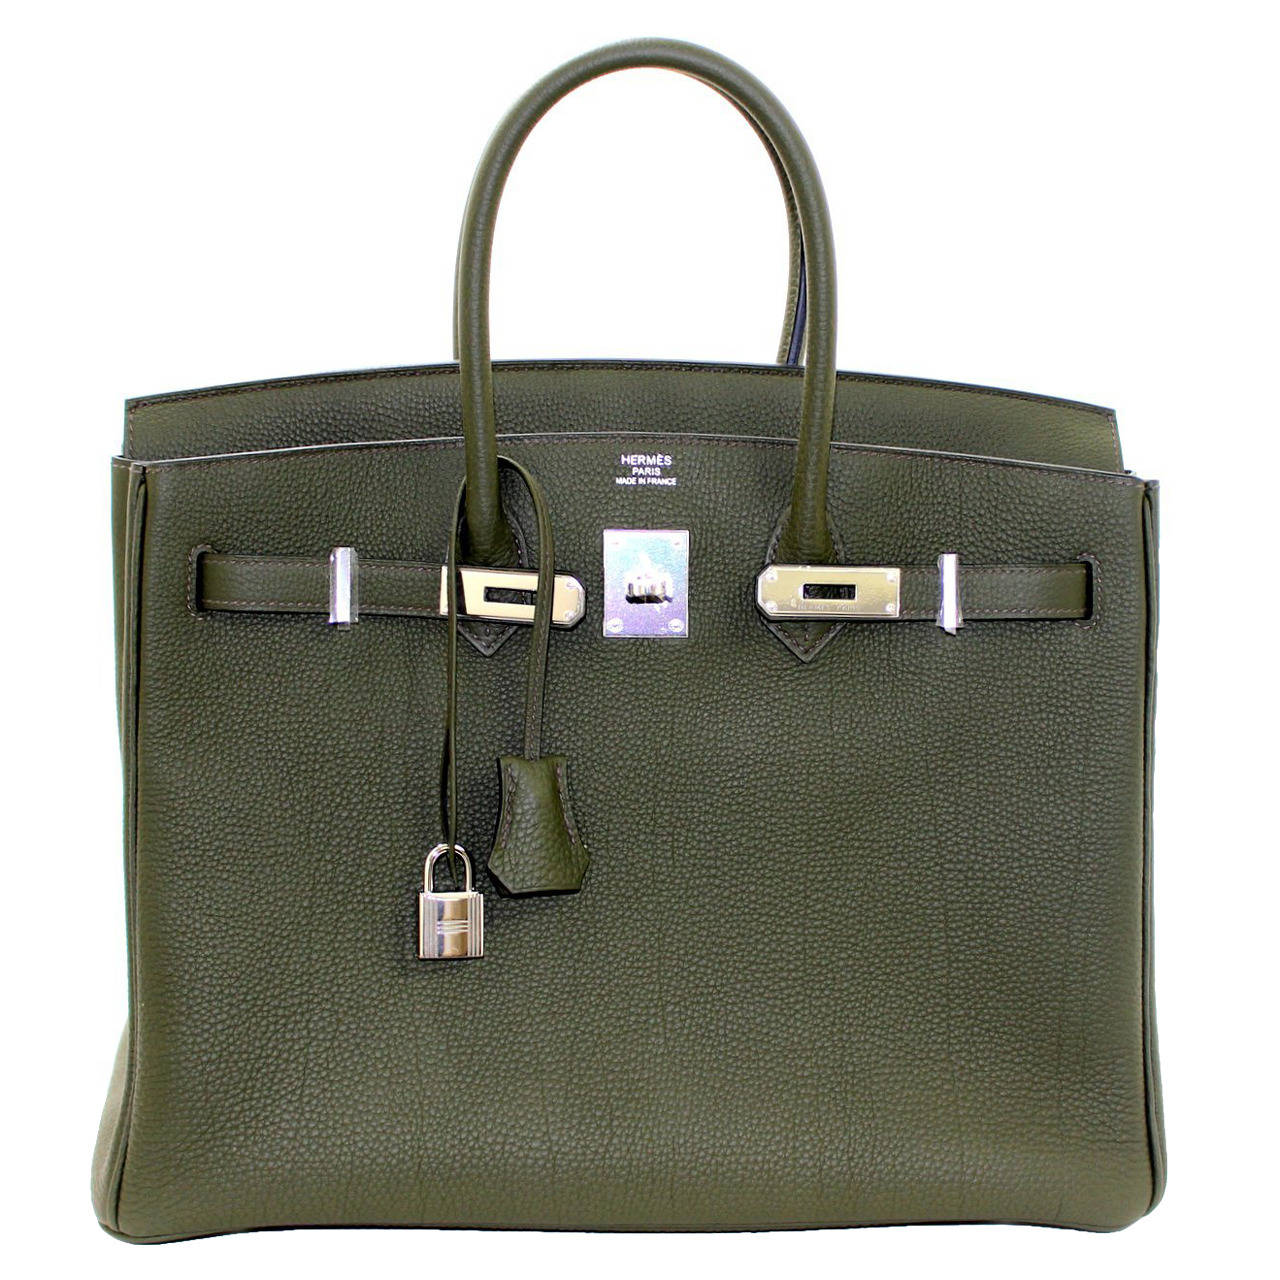 Hermes Birkin Bag in Vert Olive green Togo Leather, 35 cm size 1